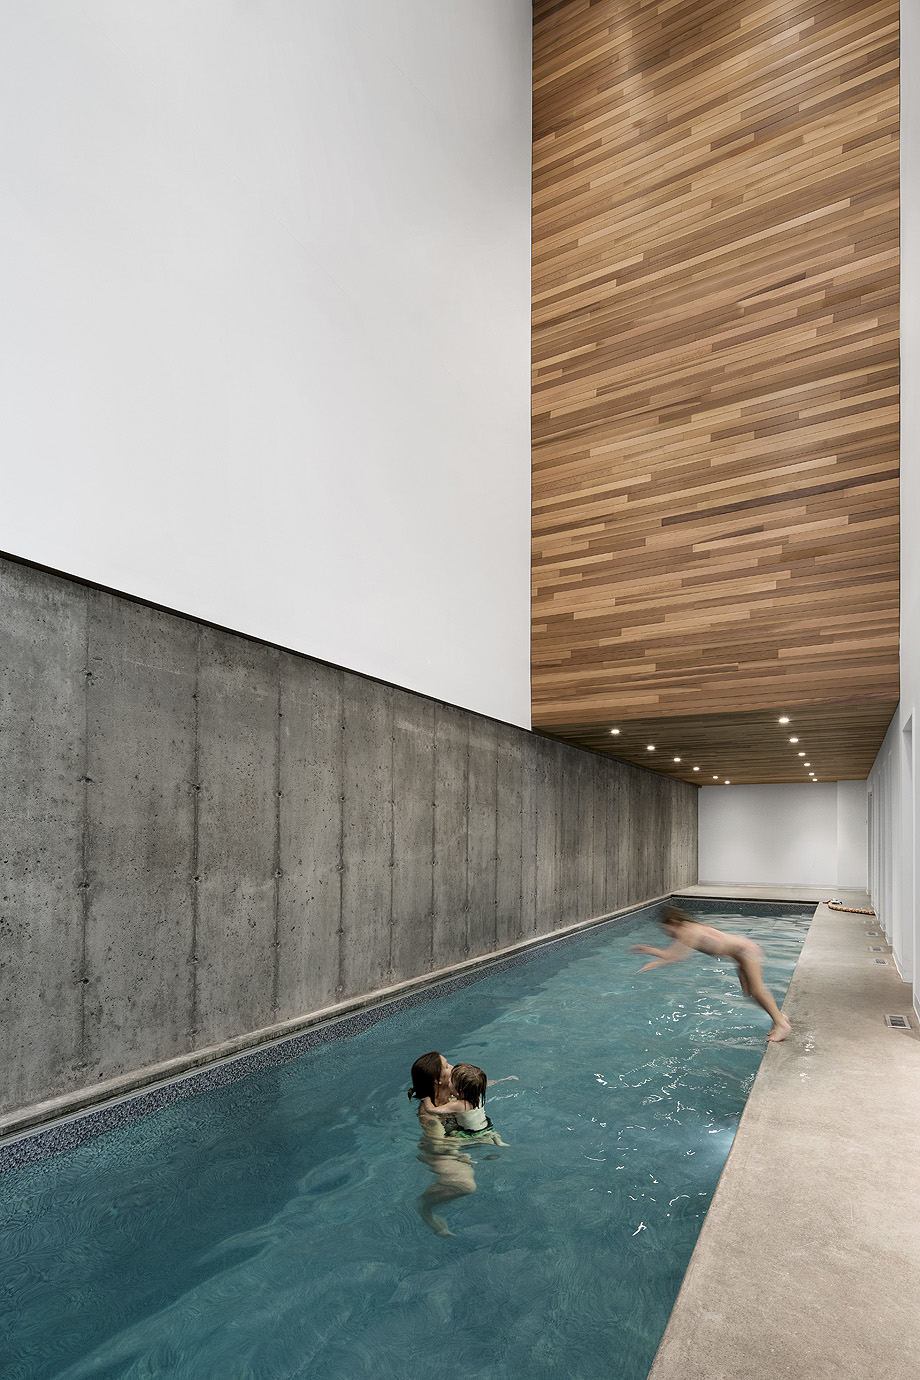 casa accostee de bourgeois lechasseur architects - foto adrien williams (10)